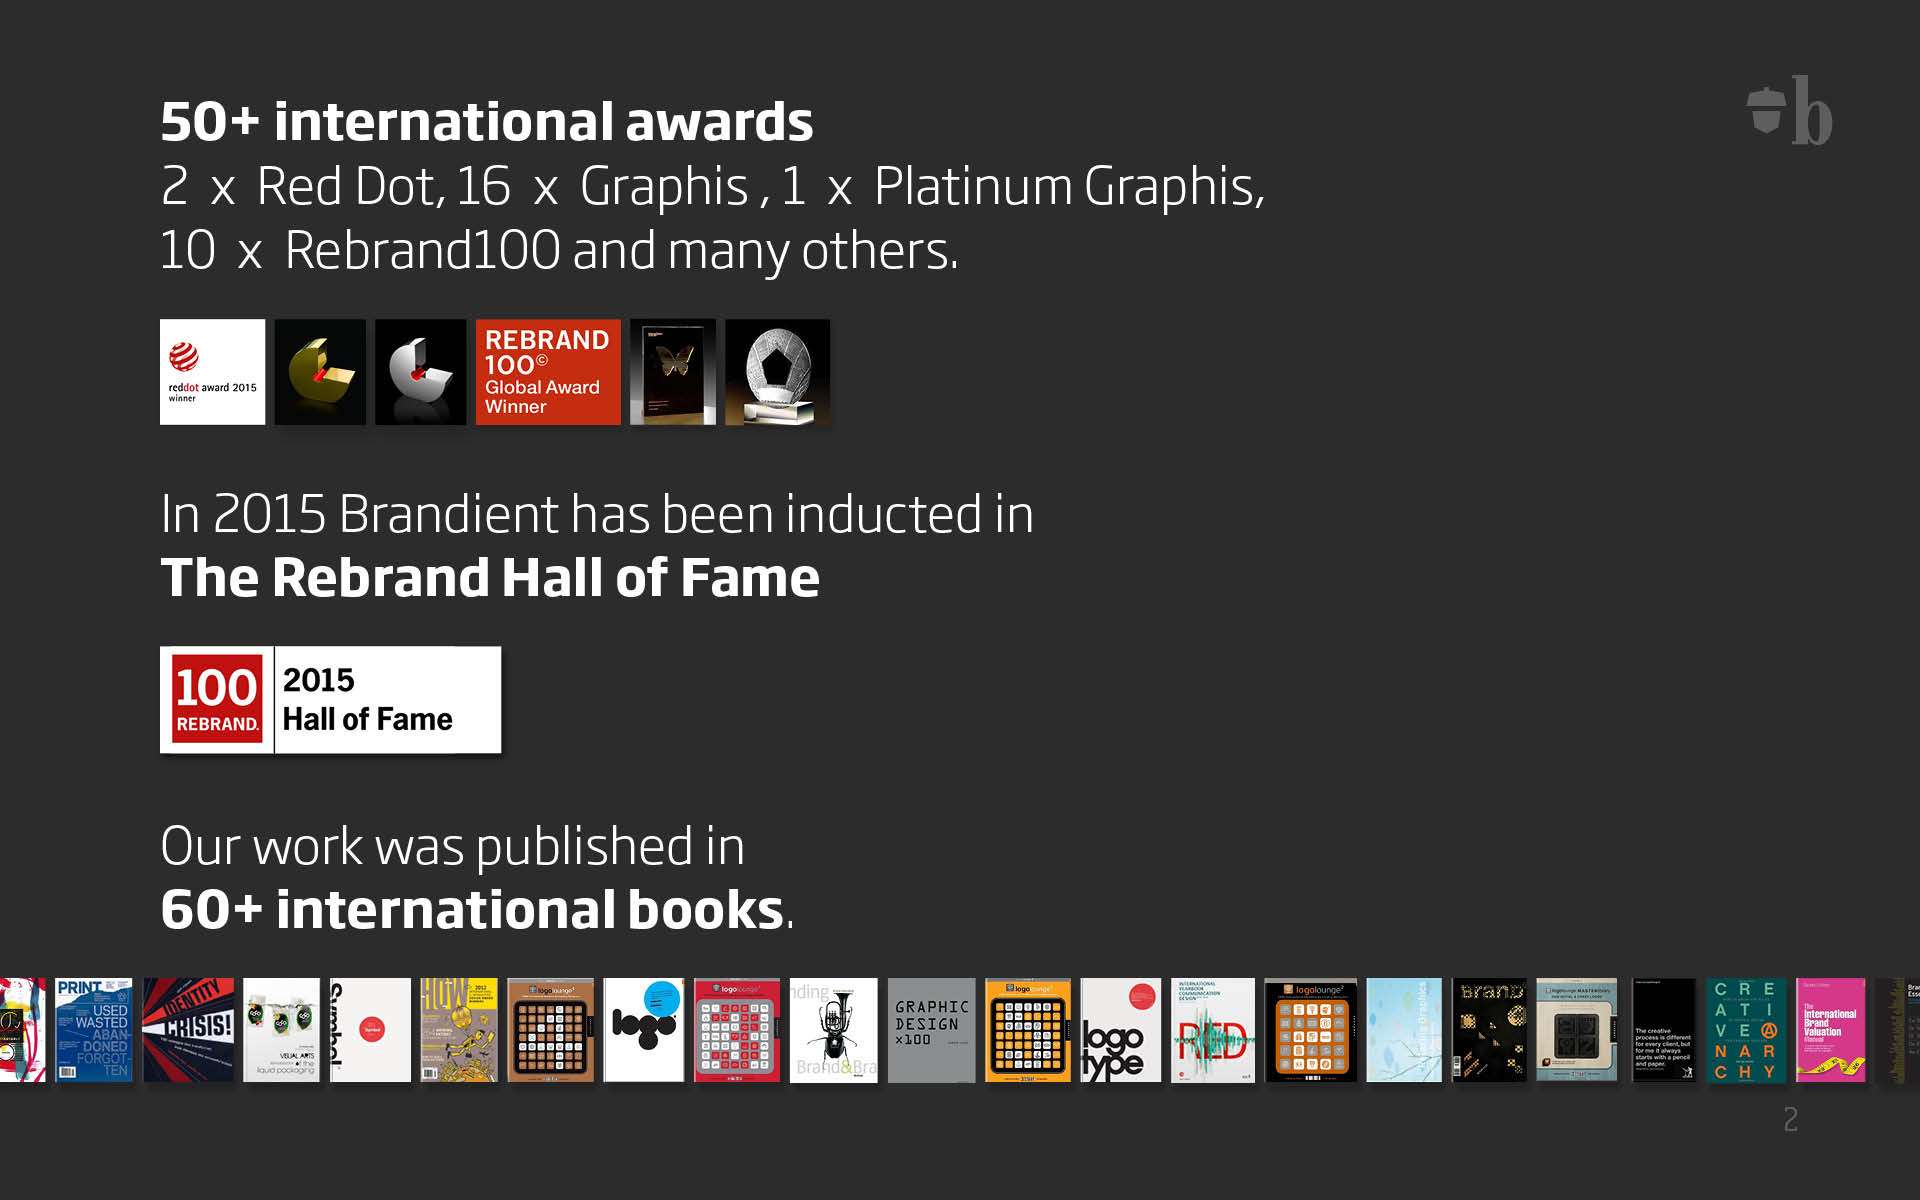 50+ international awards: 2 x Red Dot, 16 x Graphis, 1 x Platinum Graphis, 10 x Rebrand100 and many others. In 2015 Brandient has been inducted in The Rebrand Hall of Fame. Our work was published in 60+ international books.